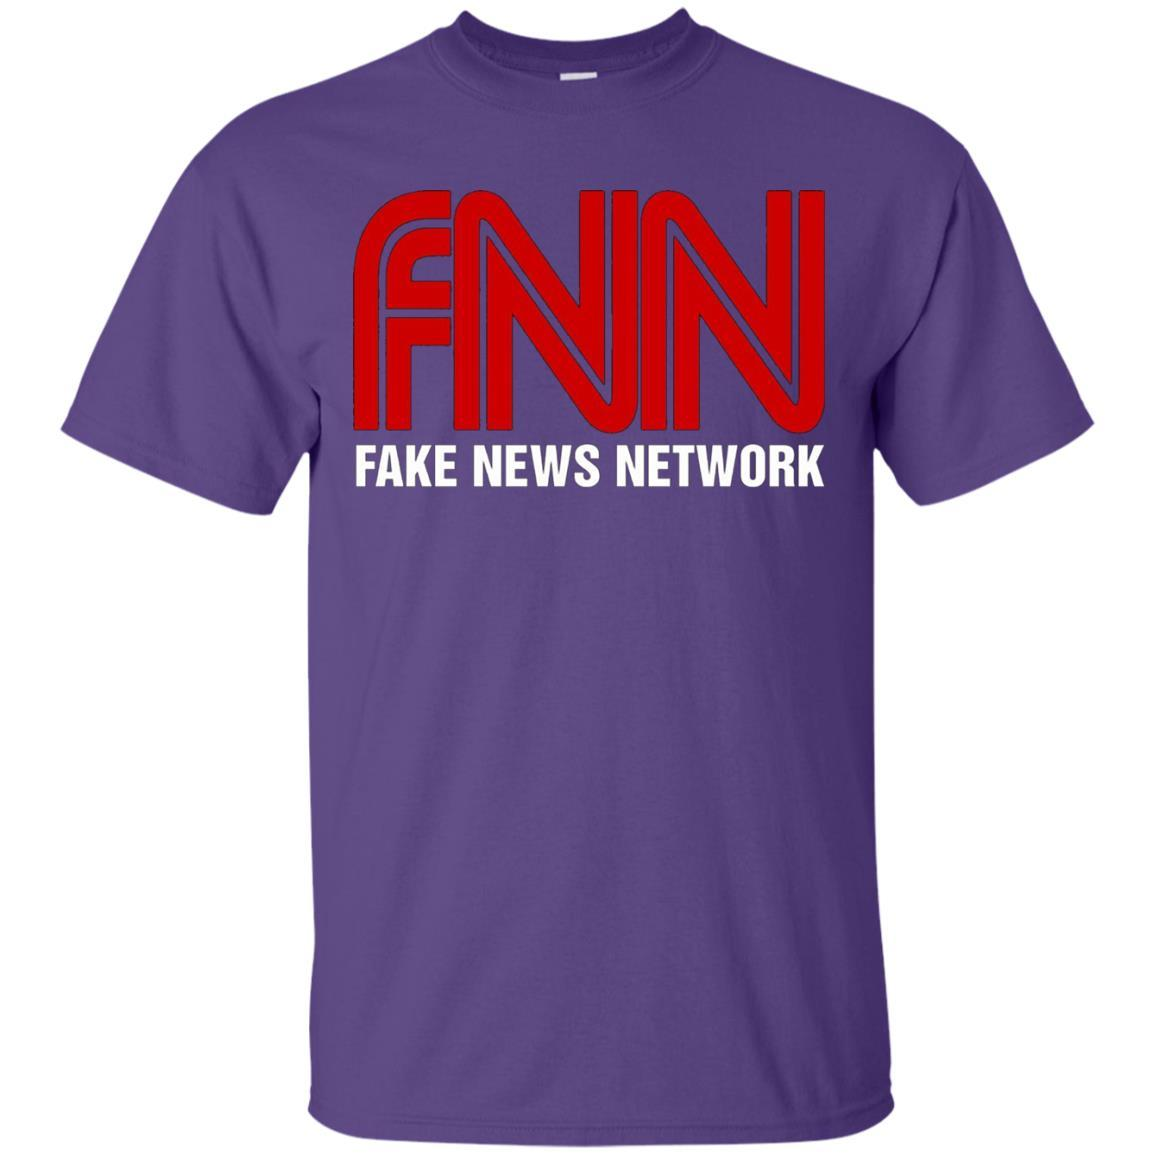 Fake News Network T-Shirt - Funny FNN Logo Humor Quote Tee Purple / 5XL